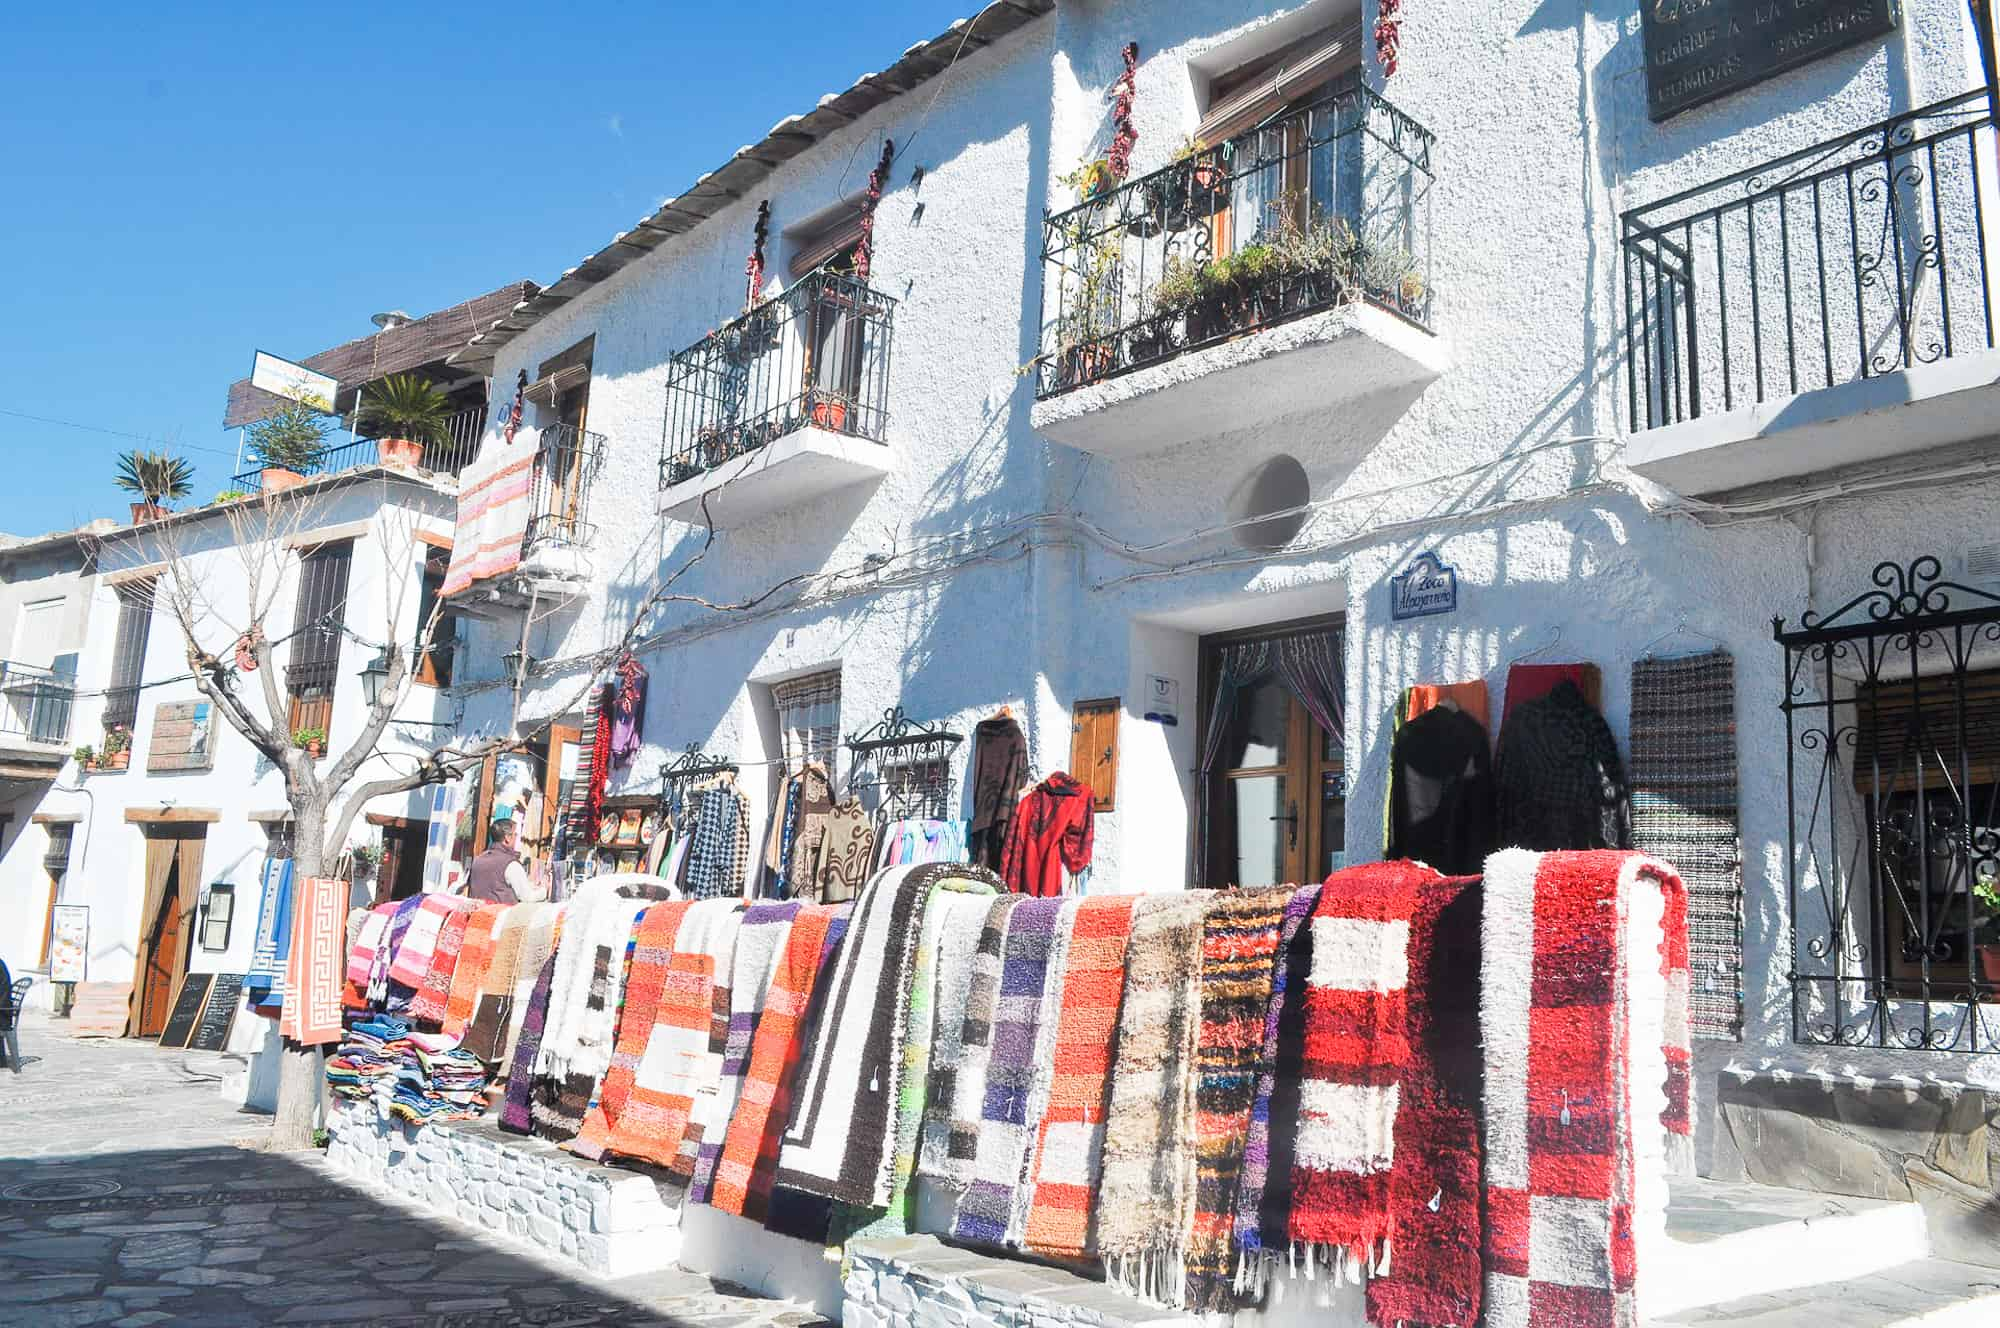 Spain - Andalucia - Alpujarras Mountains - Street view with rugs